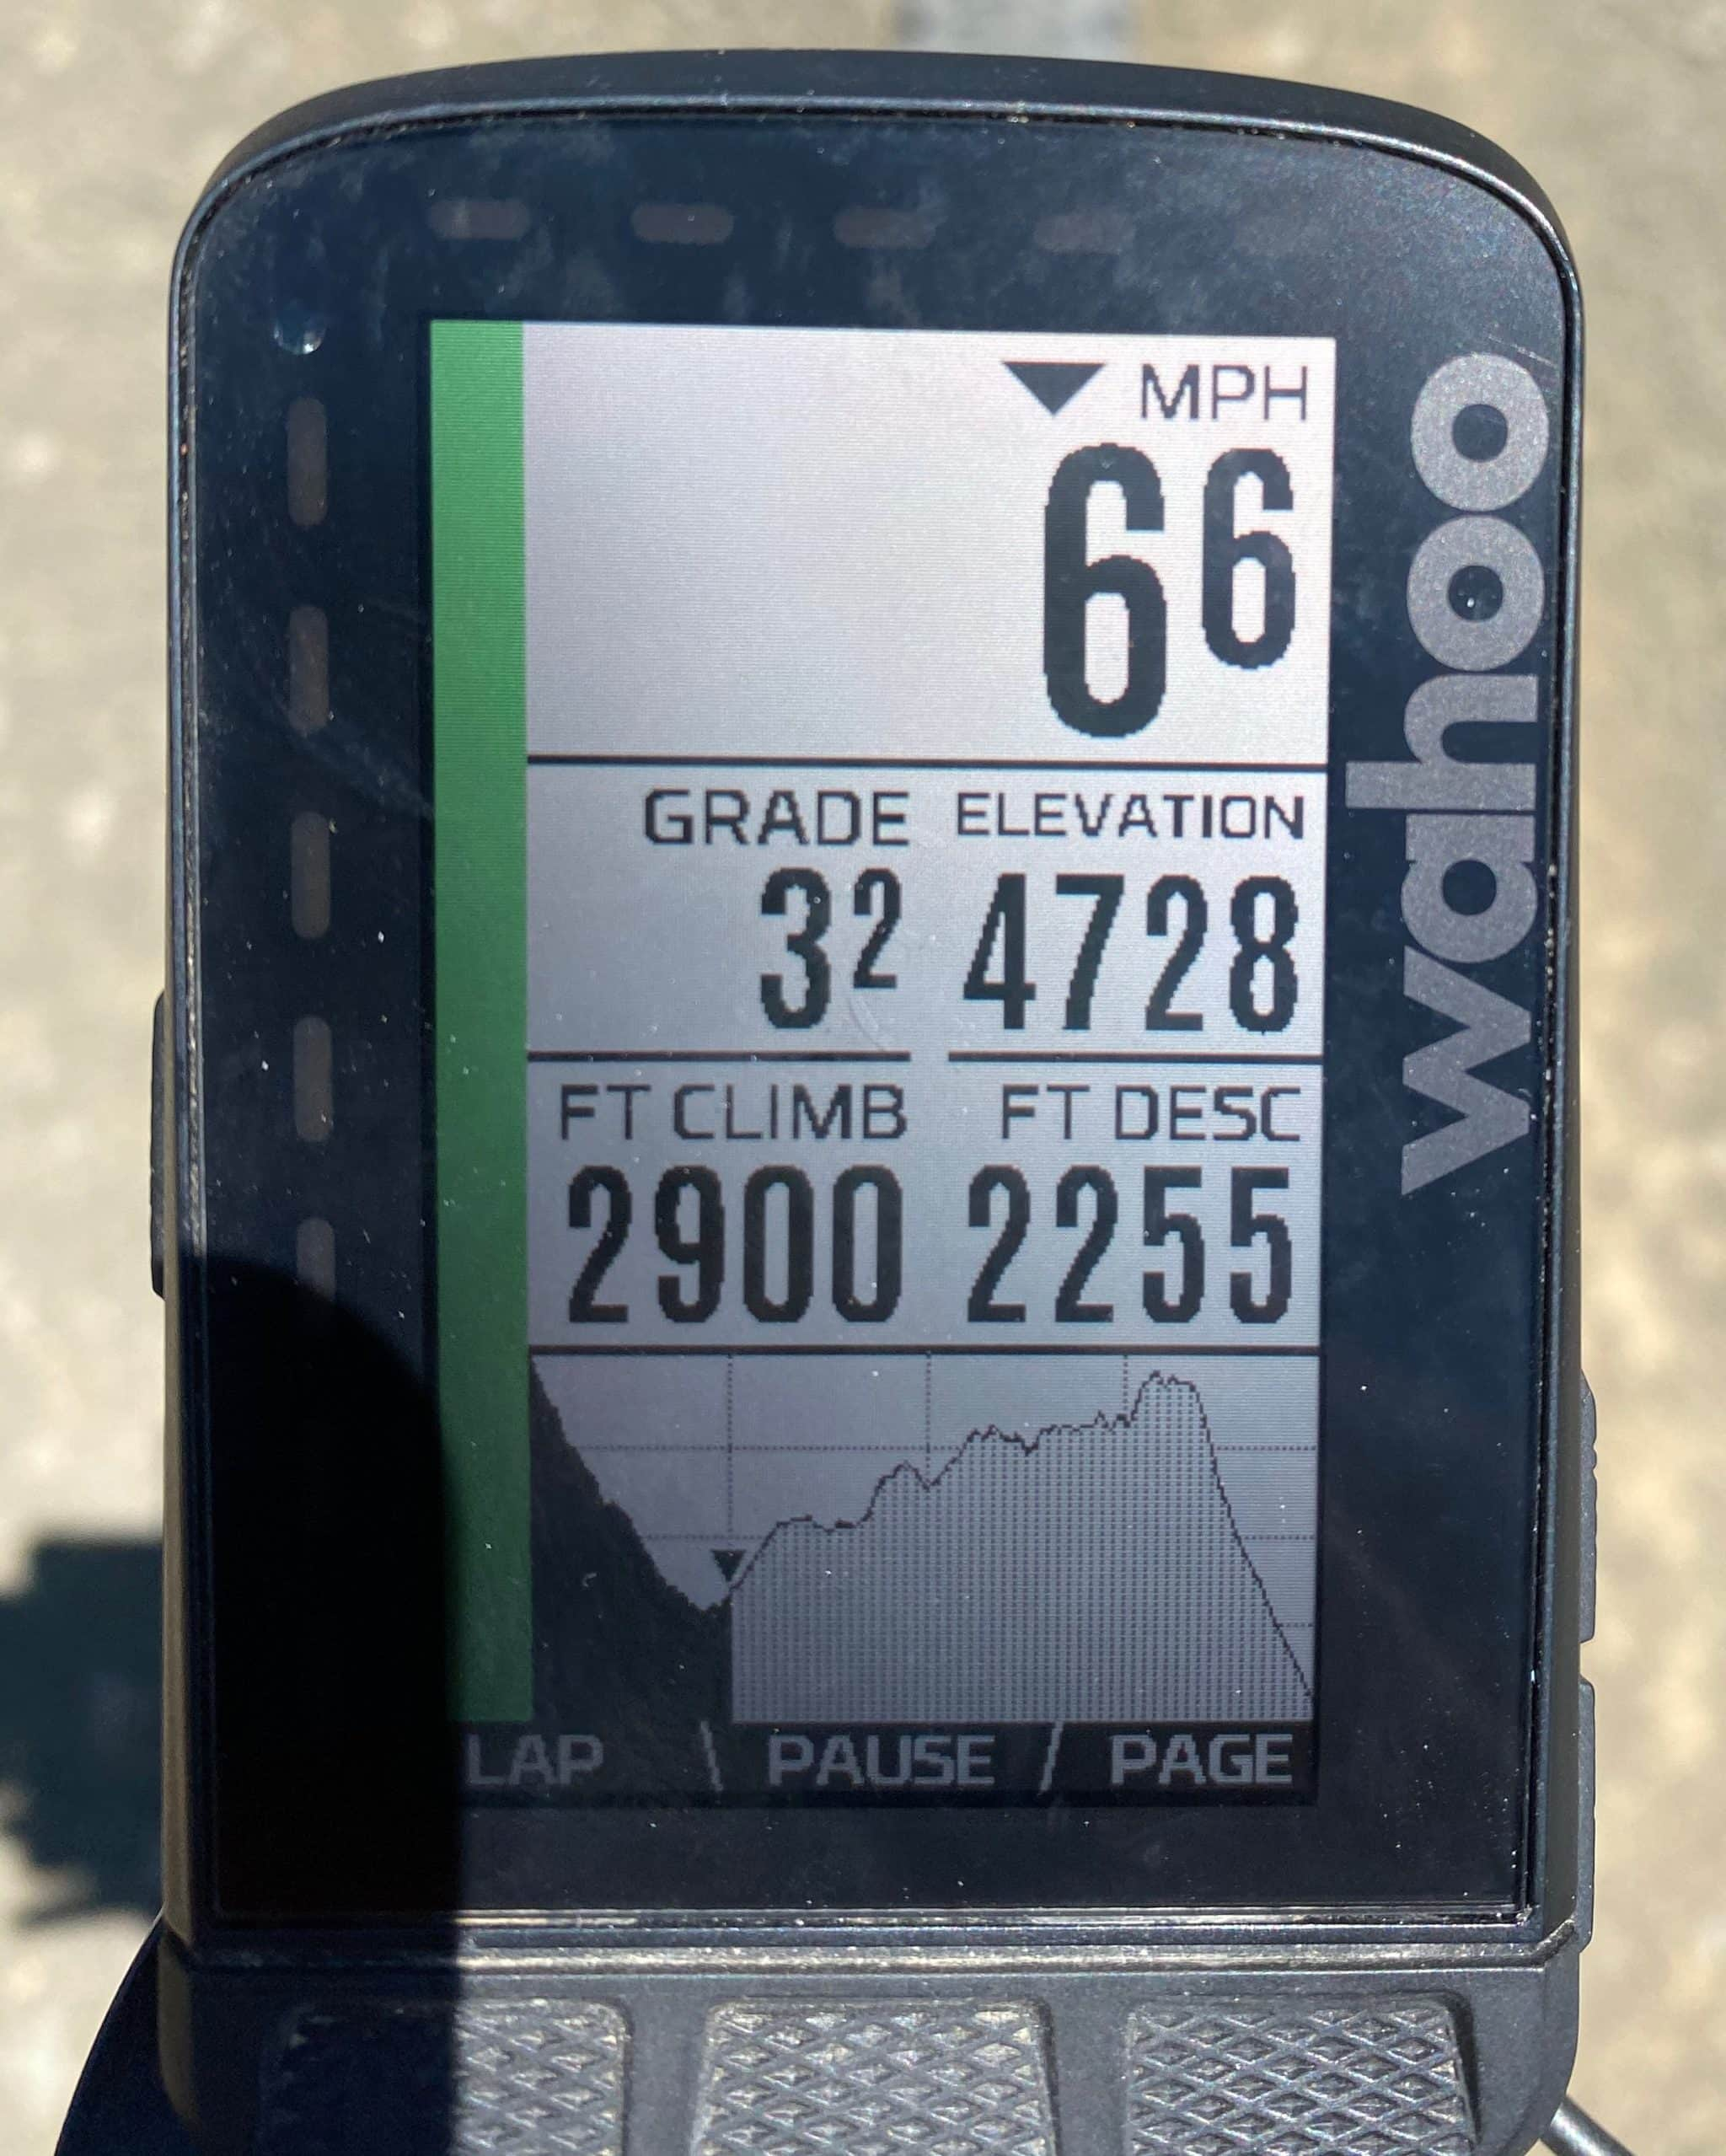 Wahoo Roam elevation profile for the Broadway Lava route on the gravel website Dirty Freehub.